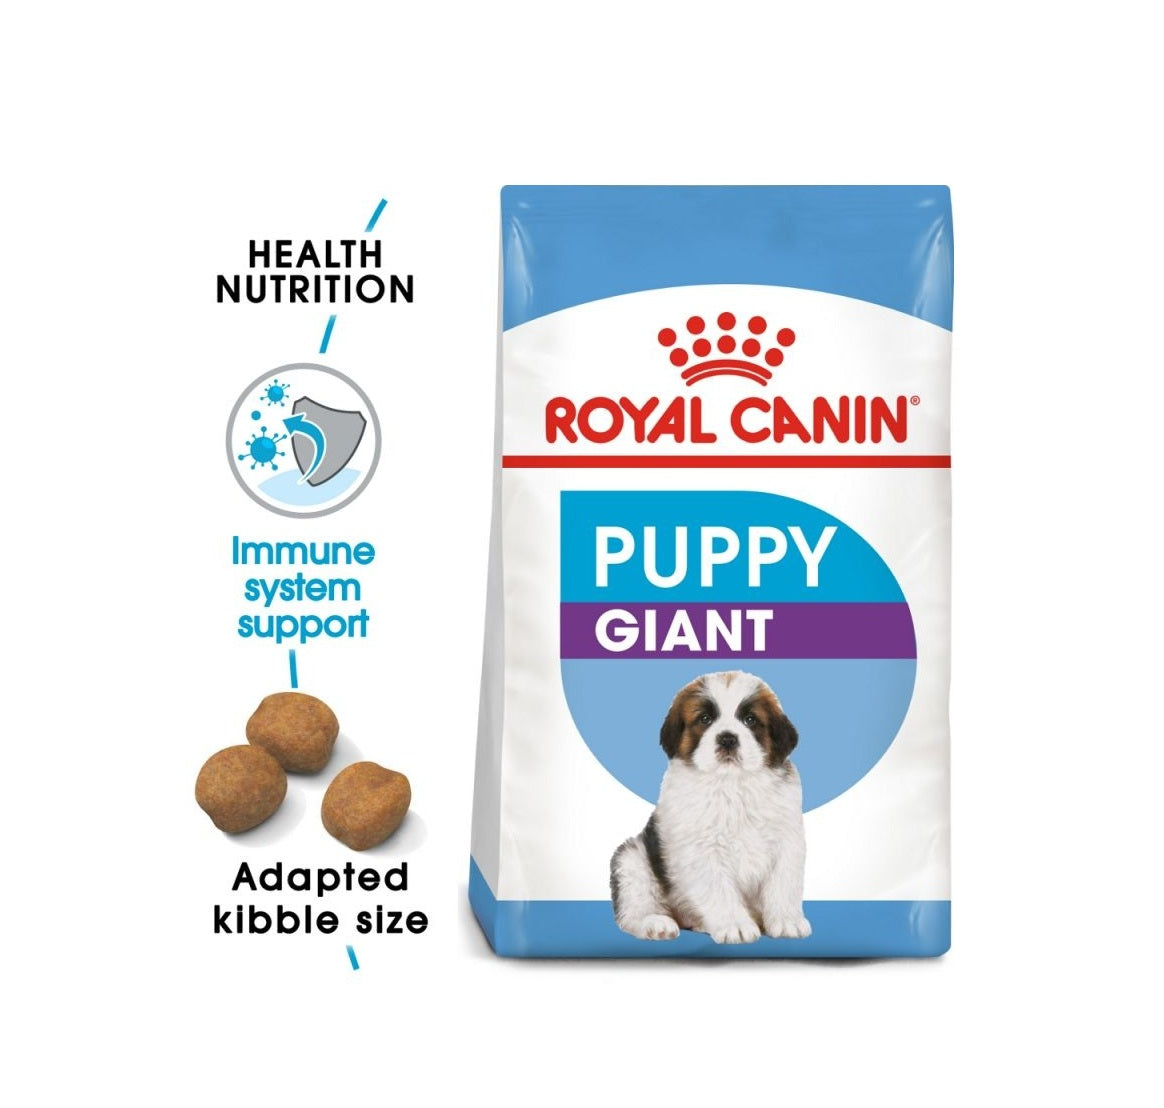 Royal Canin Giant Puppy Dog Food - pet-club-india